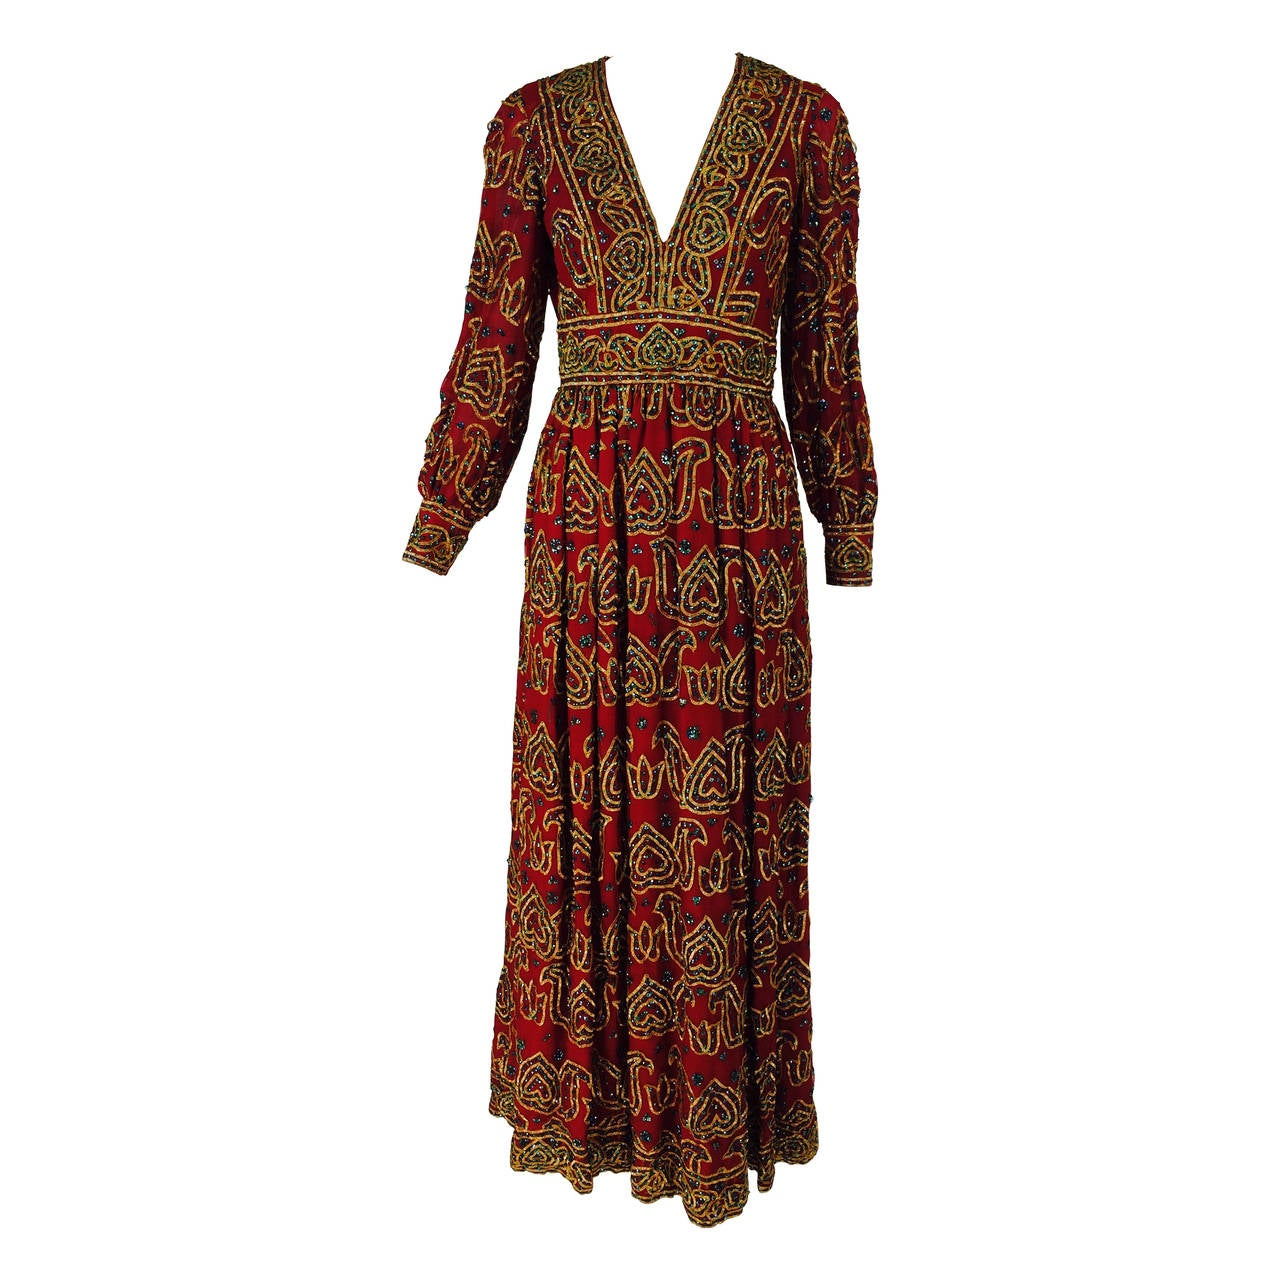 Oscar de la Renta currant red silk chiffon gown with gold braid & sequins 1970s For Sale